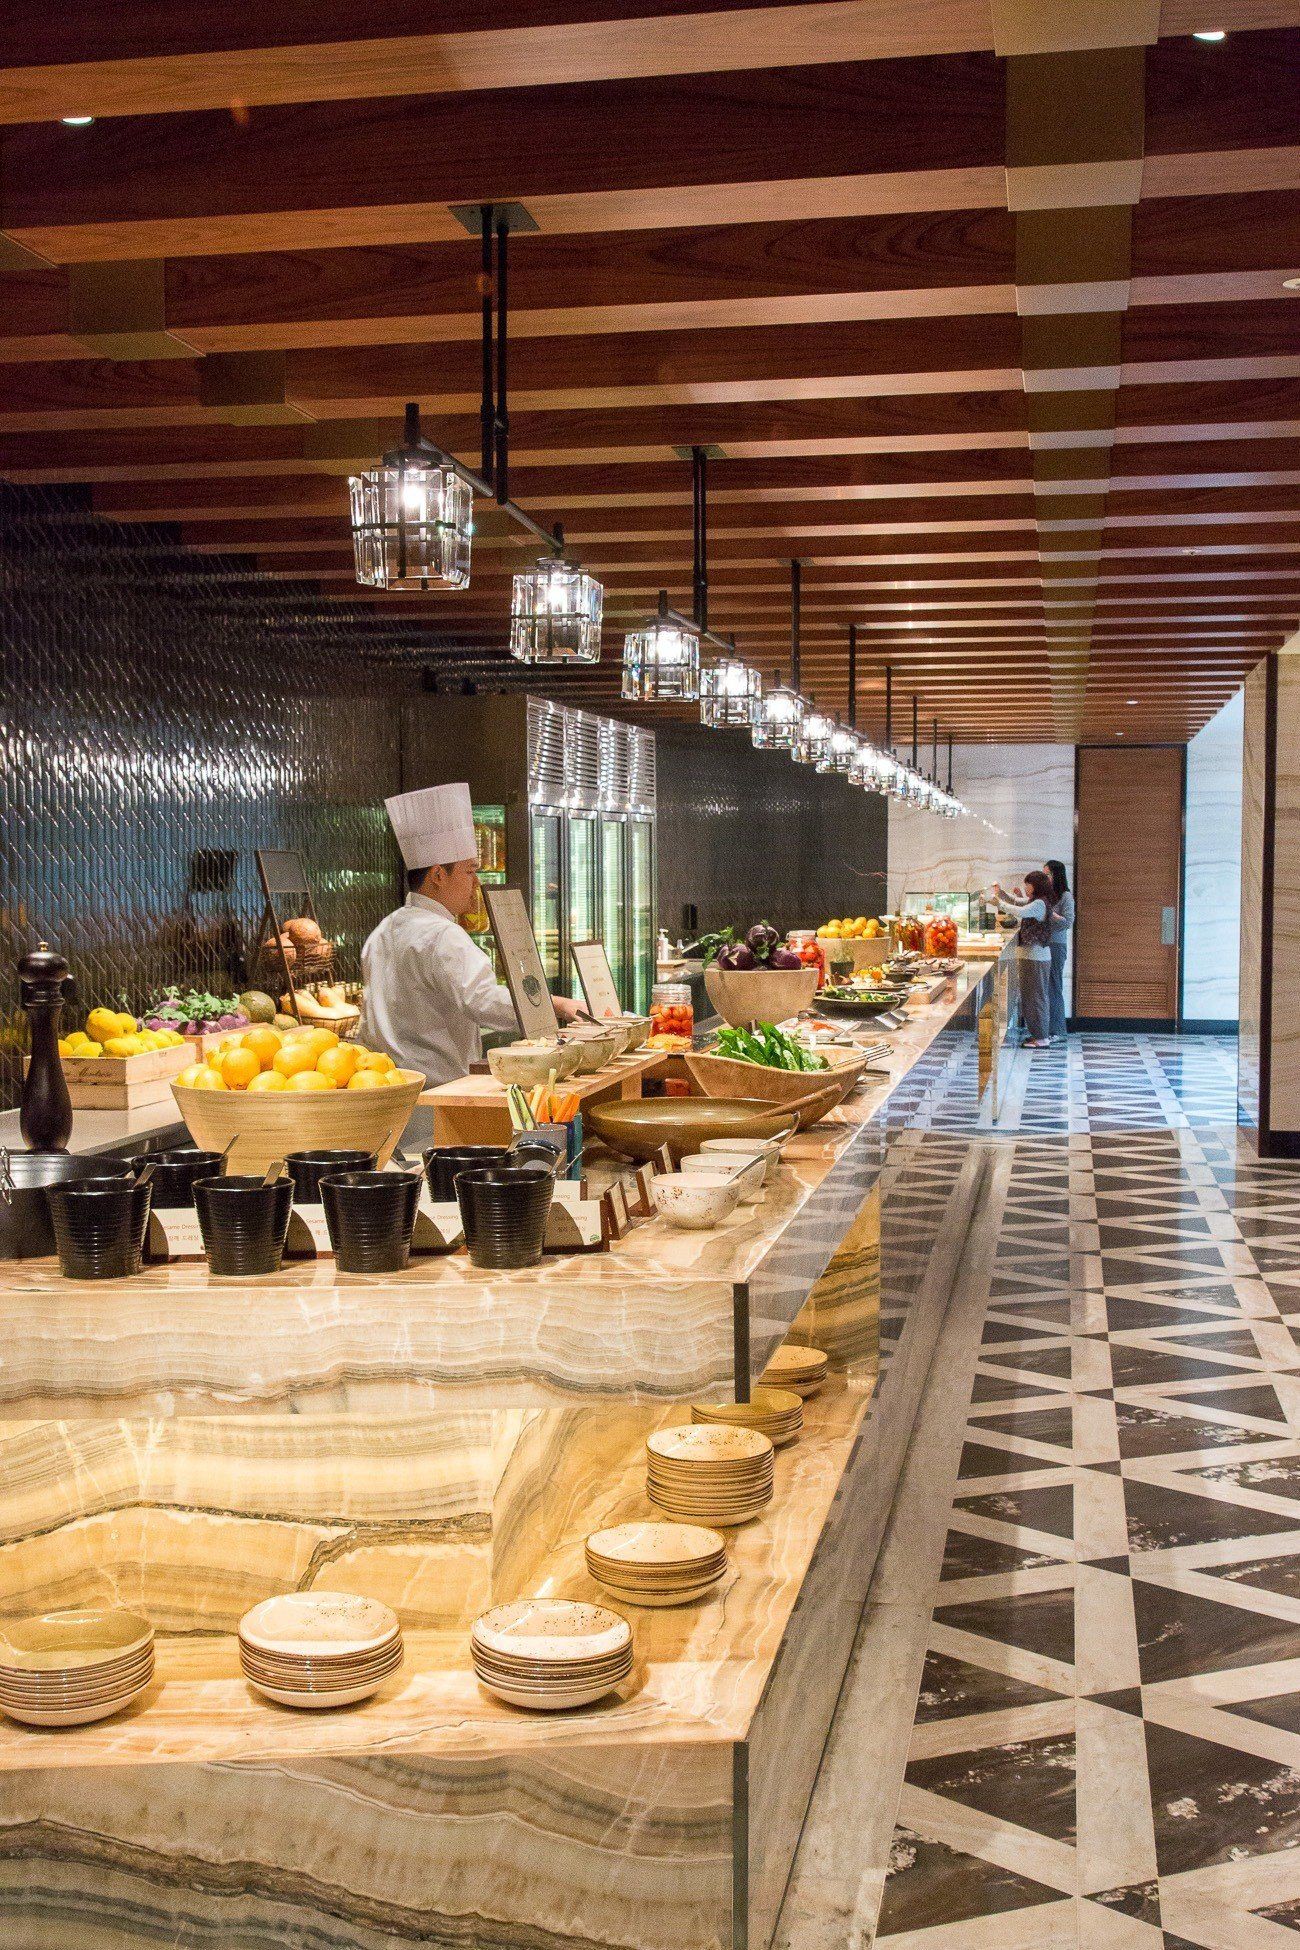 Breakfast buffet at The Marketplace features multiple cuisines.